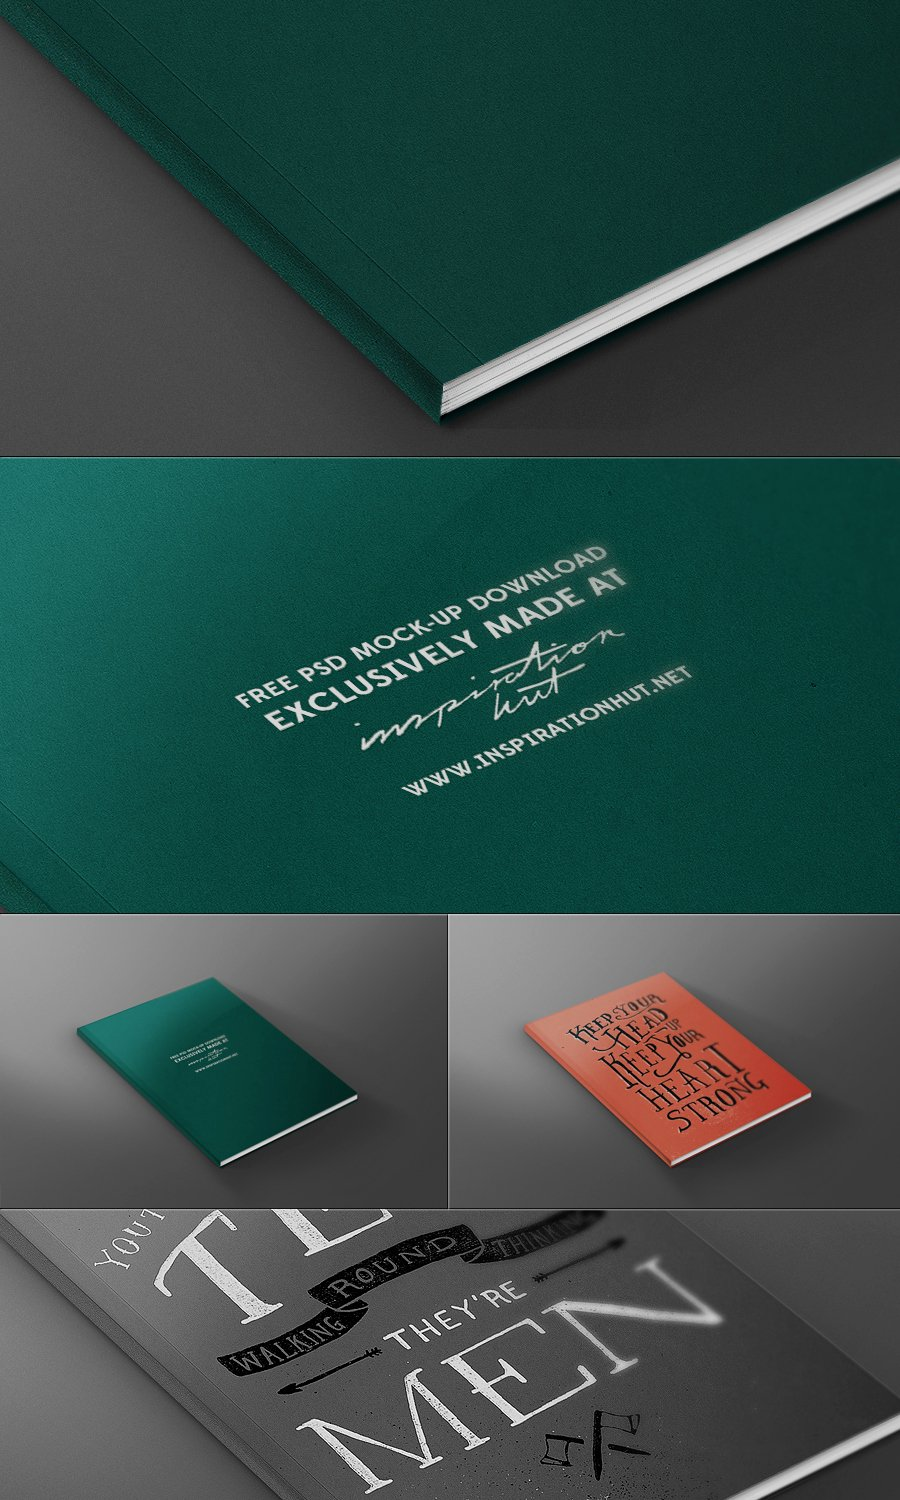 Book Cover Template Psd Fresh Free Magazine Book Front Cover Mock Up Template Psd File